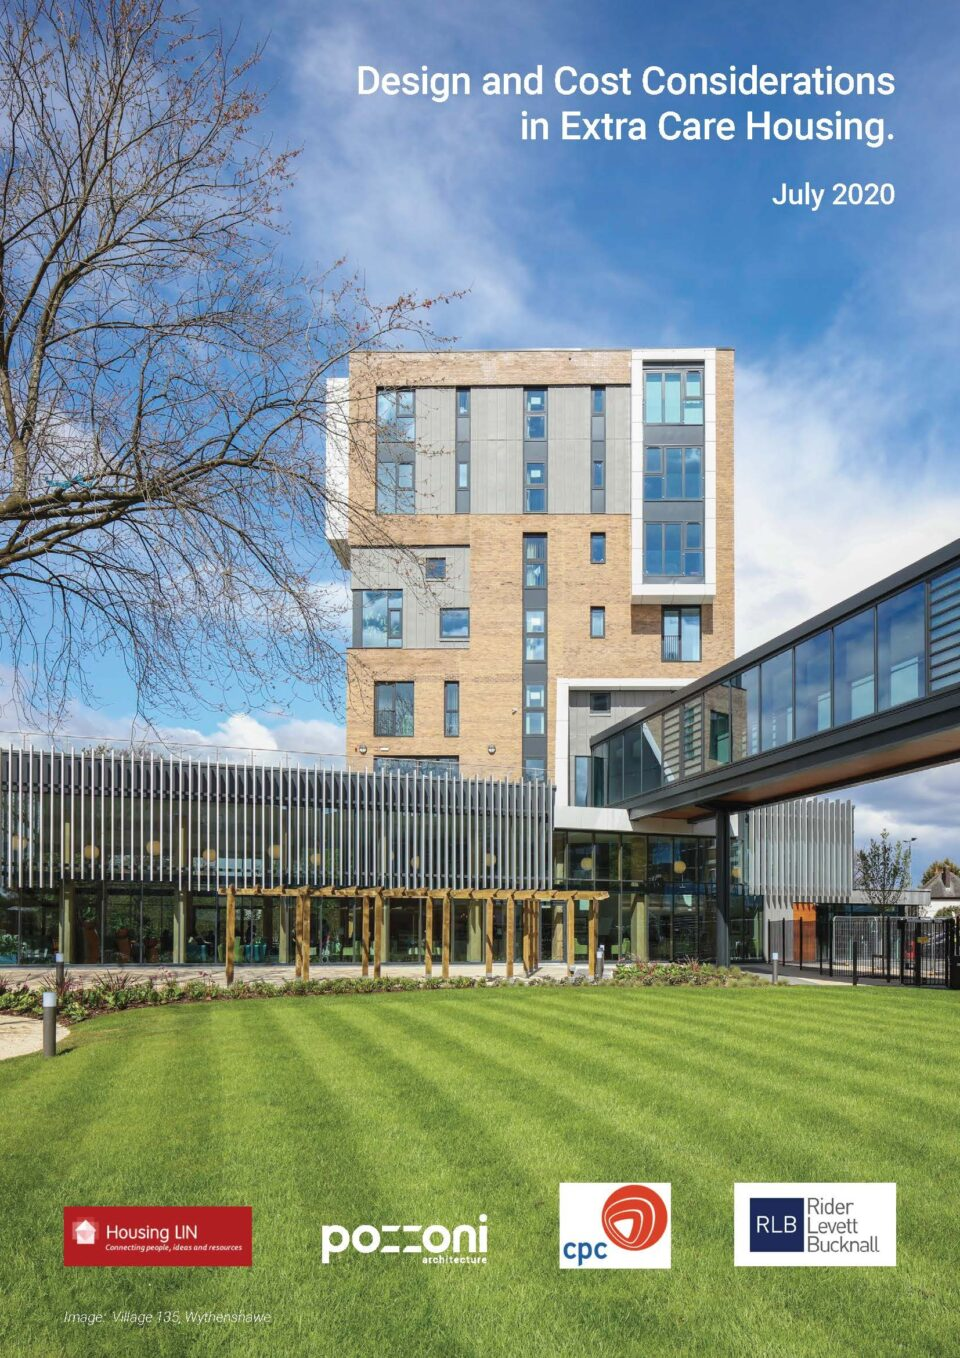 'Designing extra care environments calls for a more considered approach' by Damian Utton